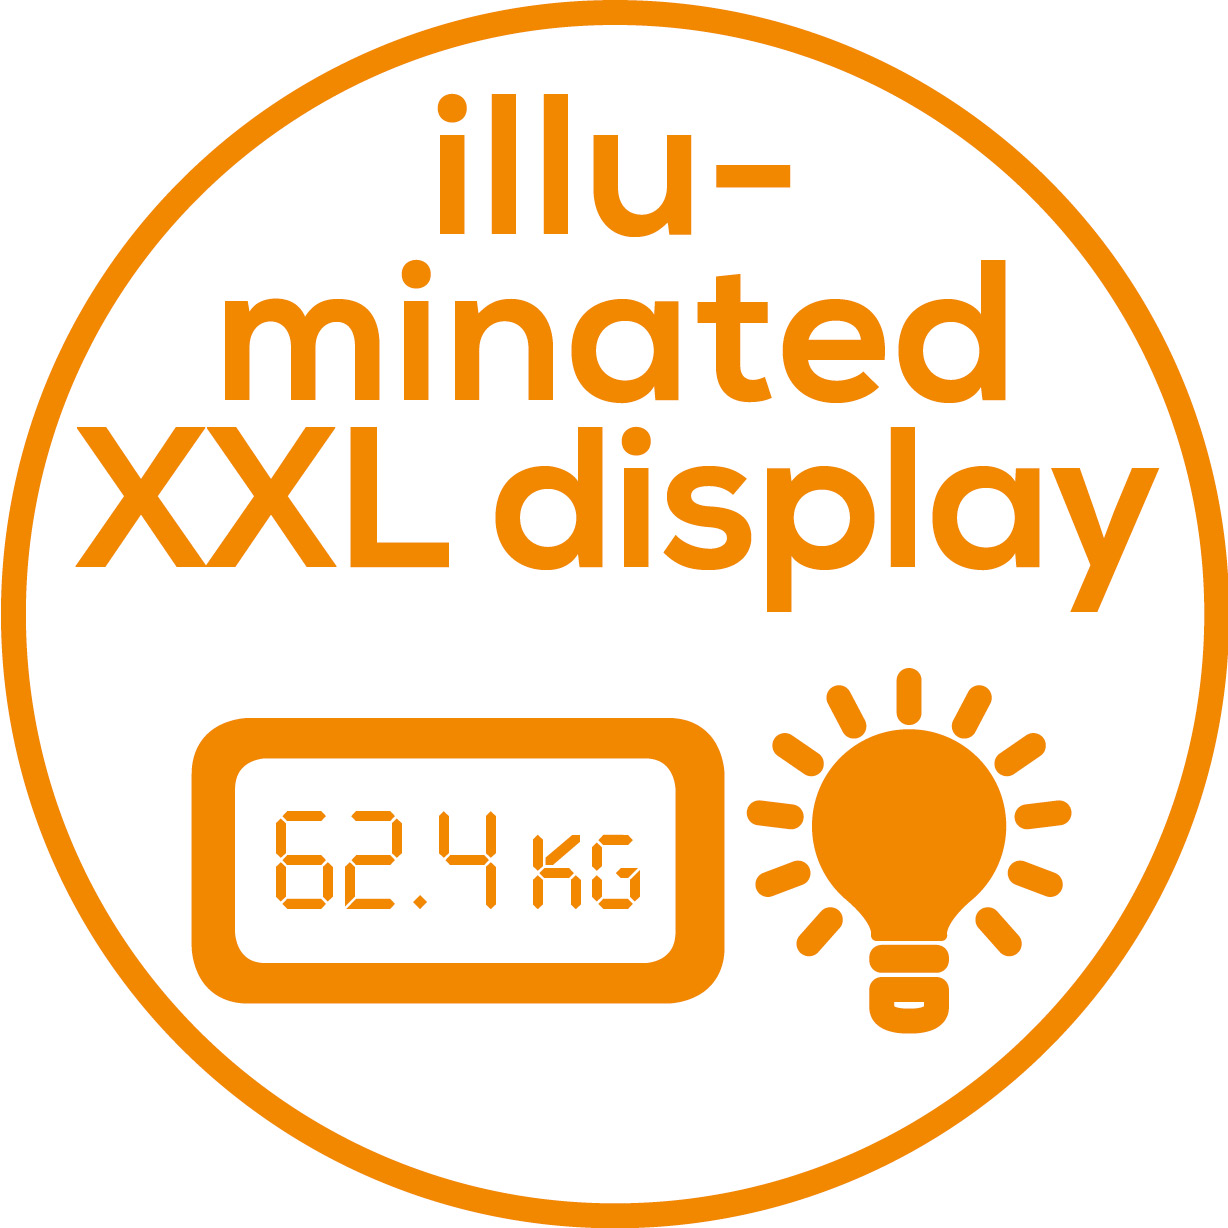 Display XXL Display XXL illuminato per una leggibilità ottimale